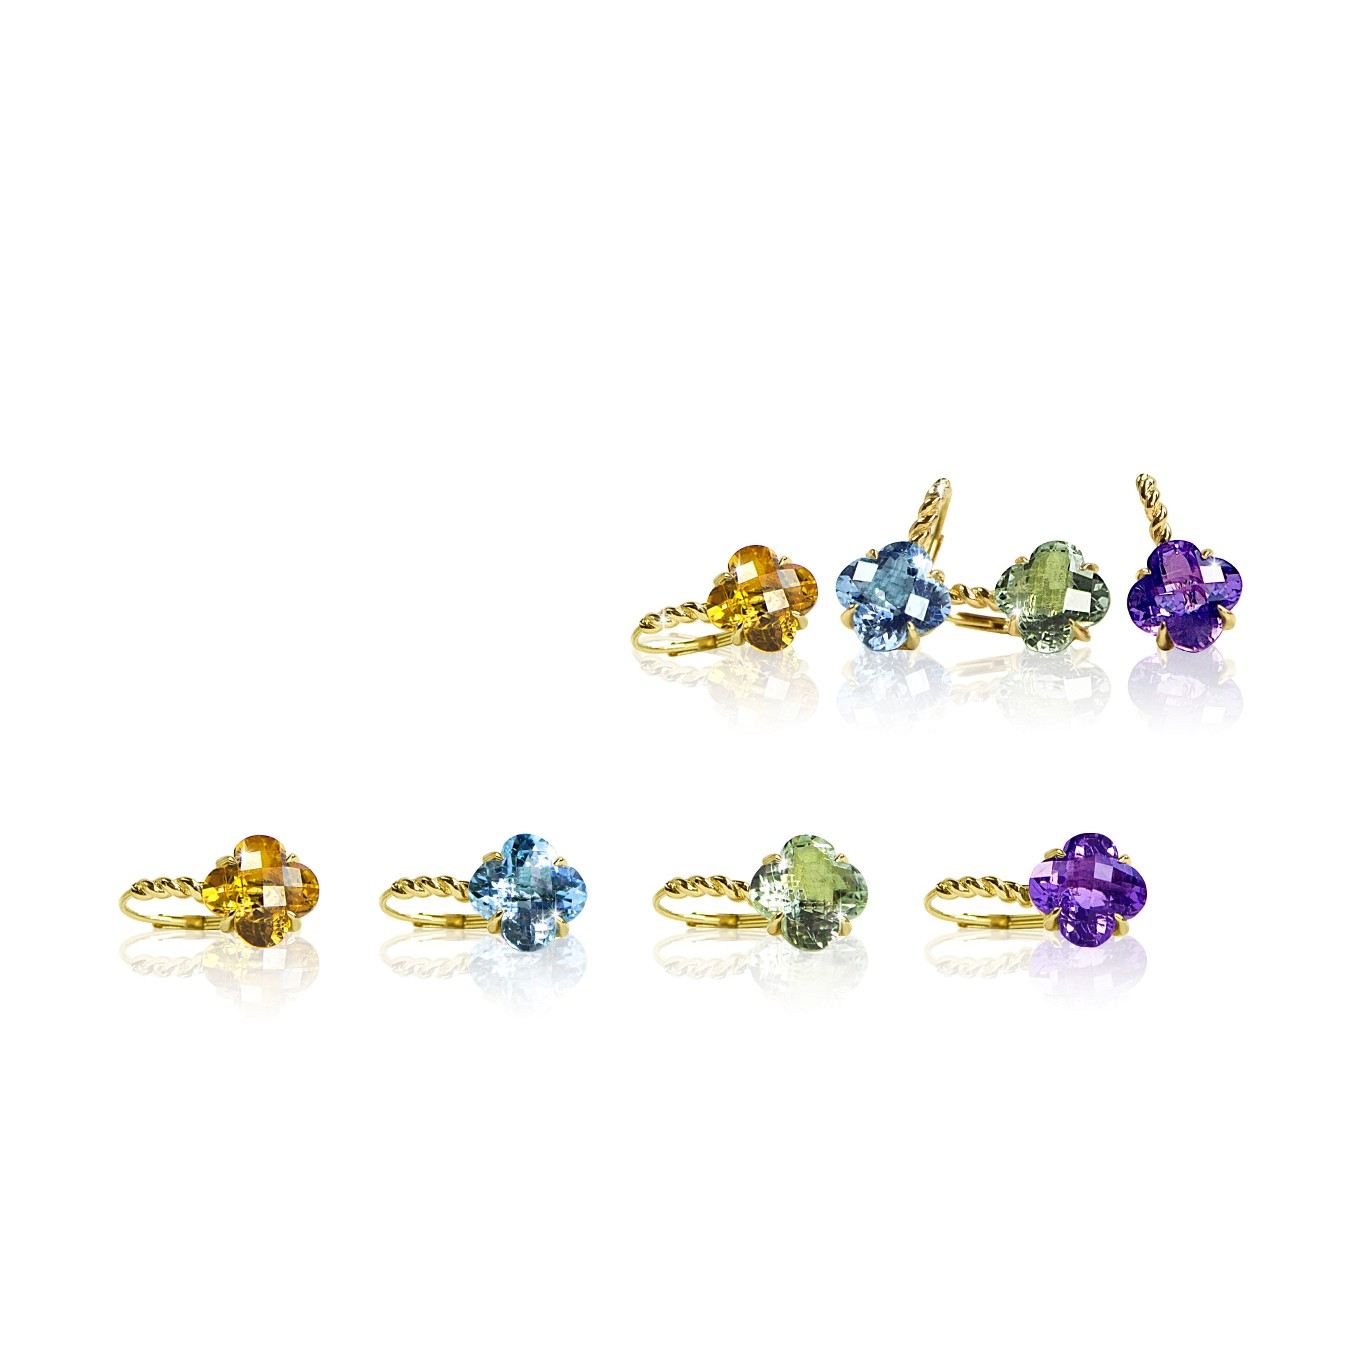 CITRINE, BLUE TOPAZ, GREEN AMETHYST, & AMETHYST CLOVER EARRINGS IN YELLOW GOLD